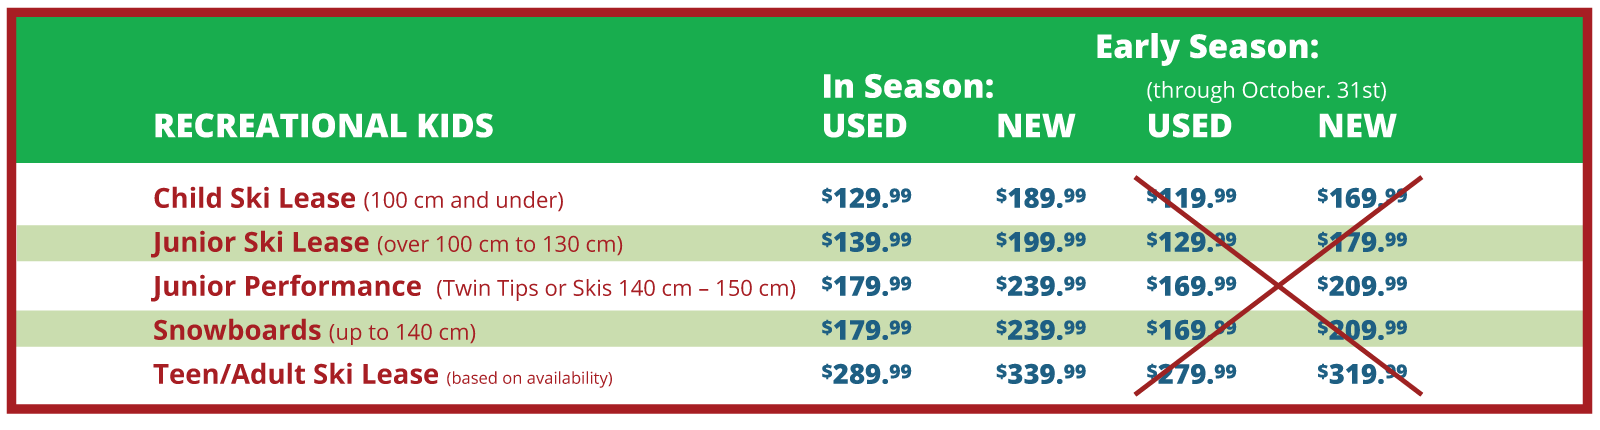 Seasonal Lease and Jr Trade In Program Pricing